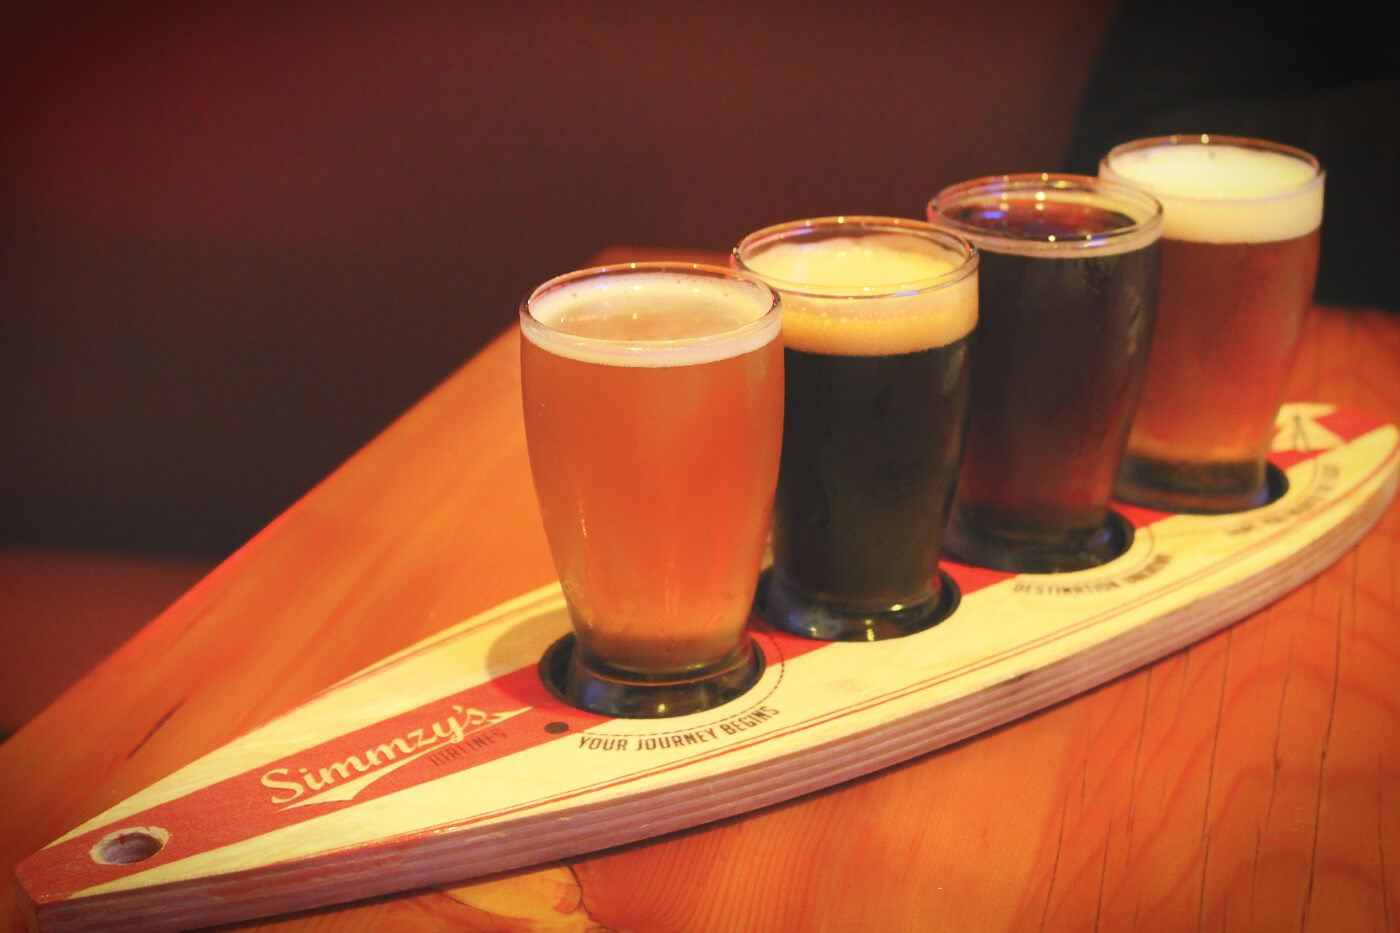 Simmzy's beer flight in Manhattan Beach, South Bay, Los Angeles, California.